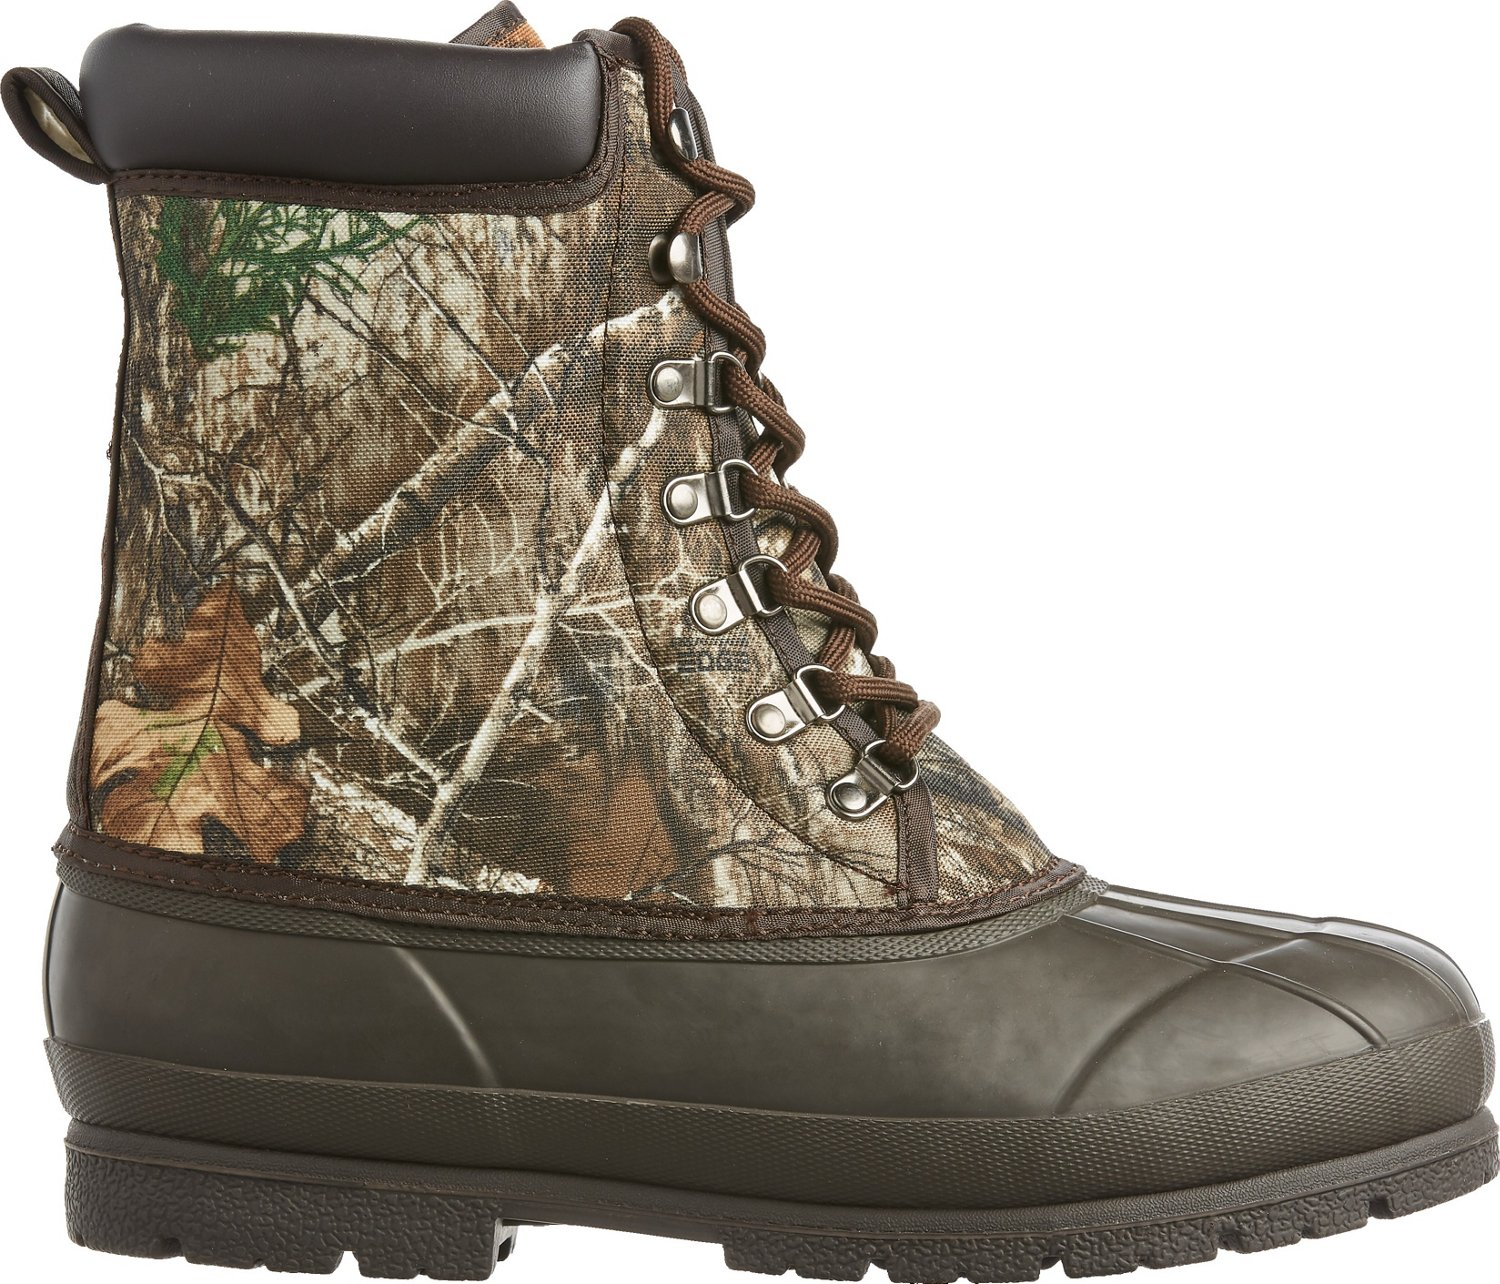 Display product reviews for Magellan Outdoors Men's Duck Boots This product is currently selected